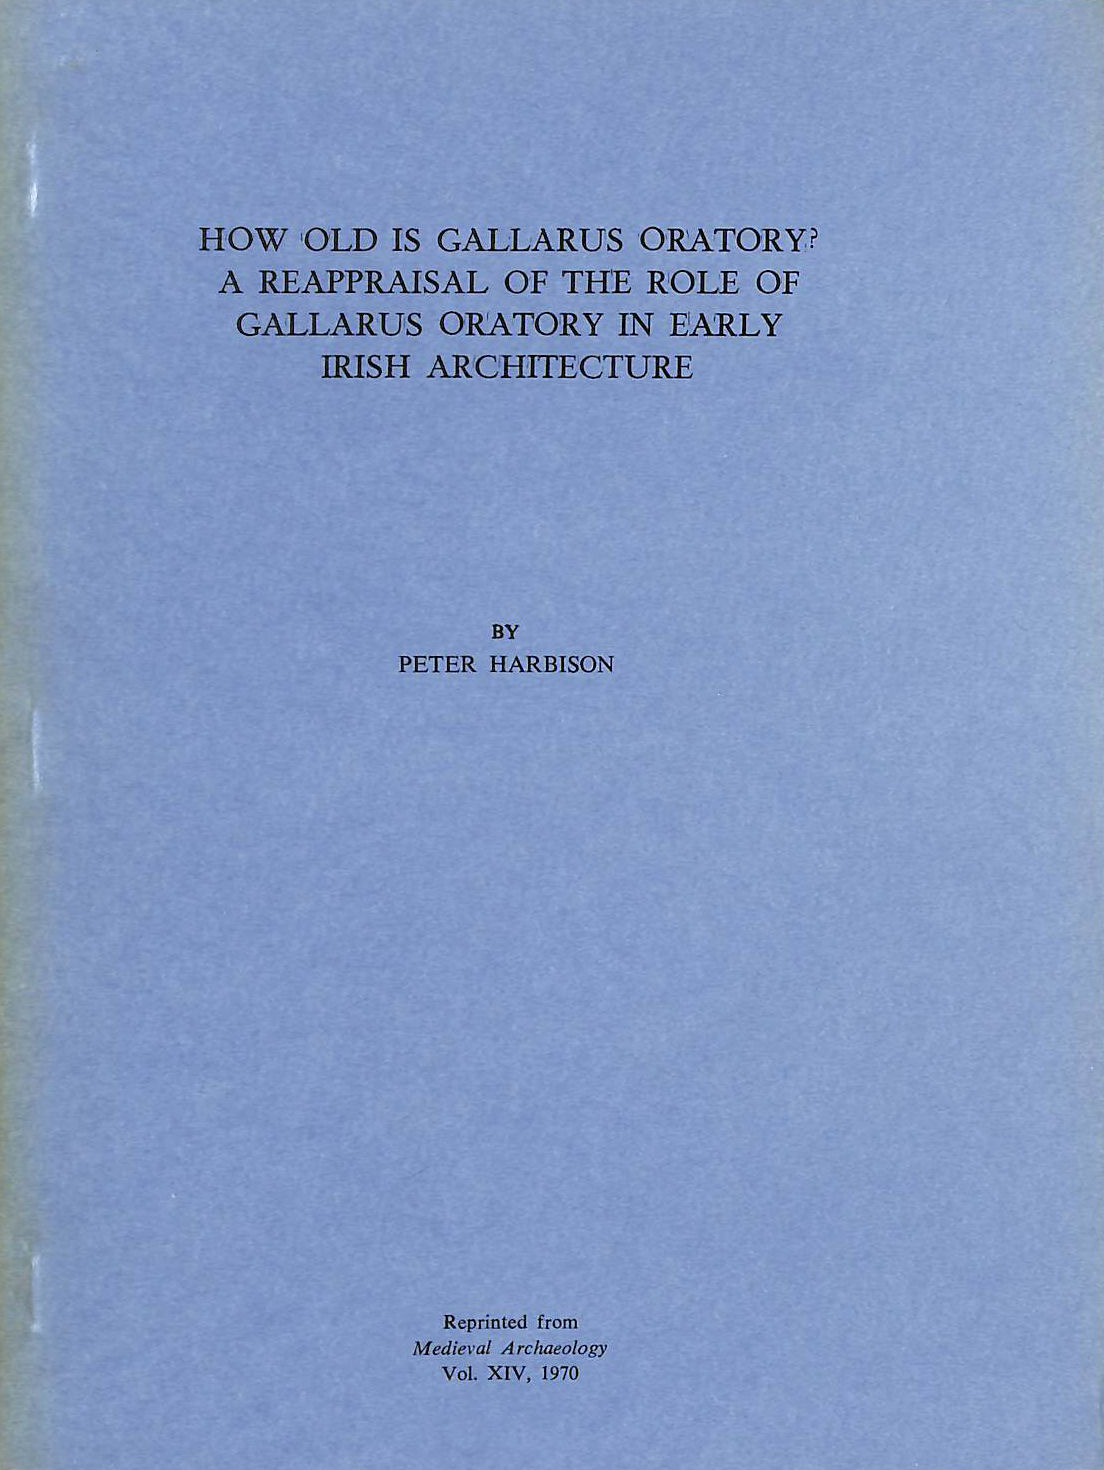 Image for How Old is Gallarus oratory? A reappraisal of its role in early Irish architecture